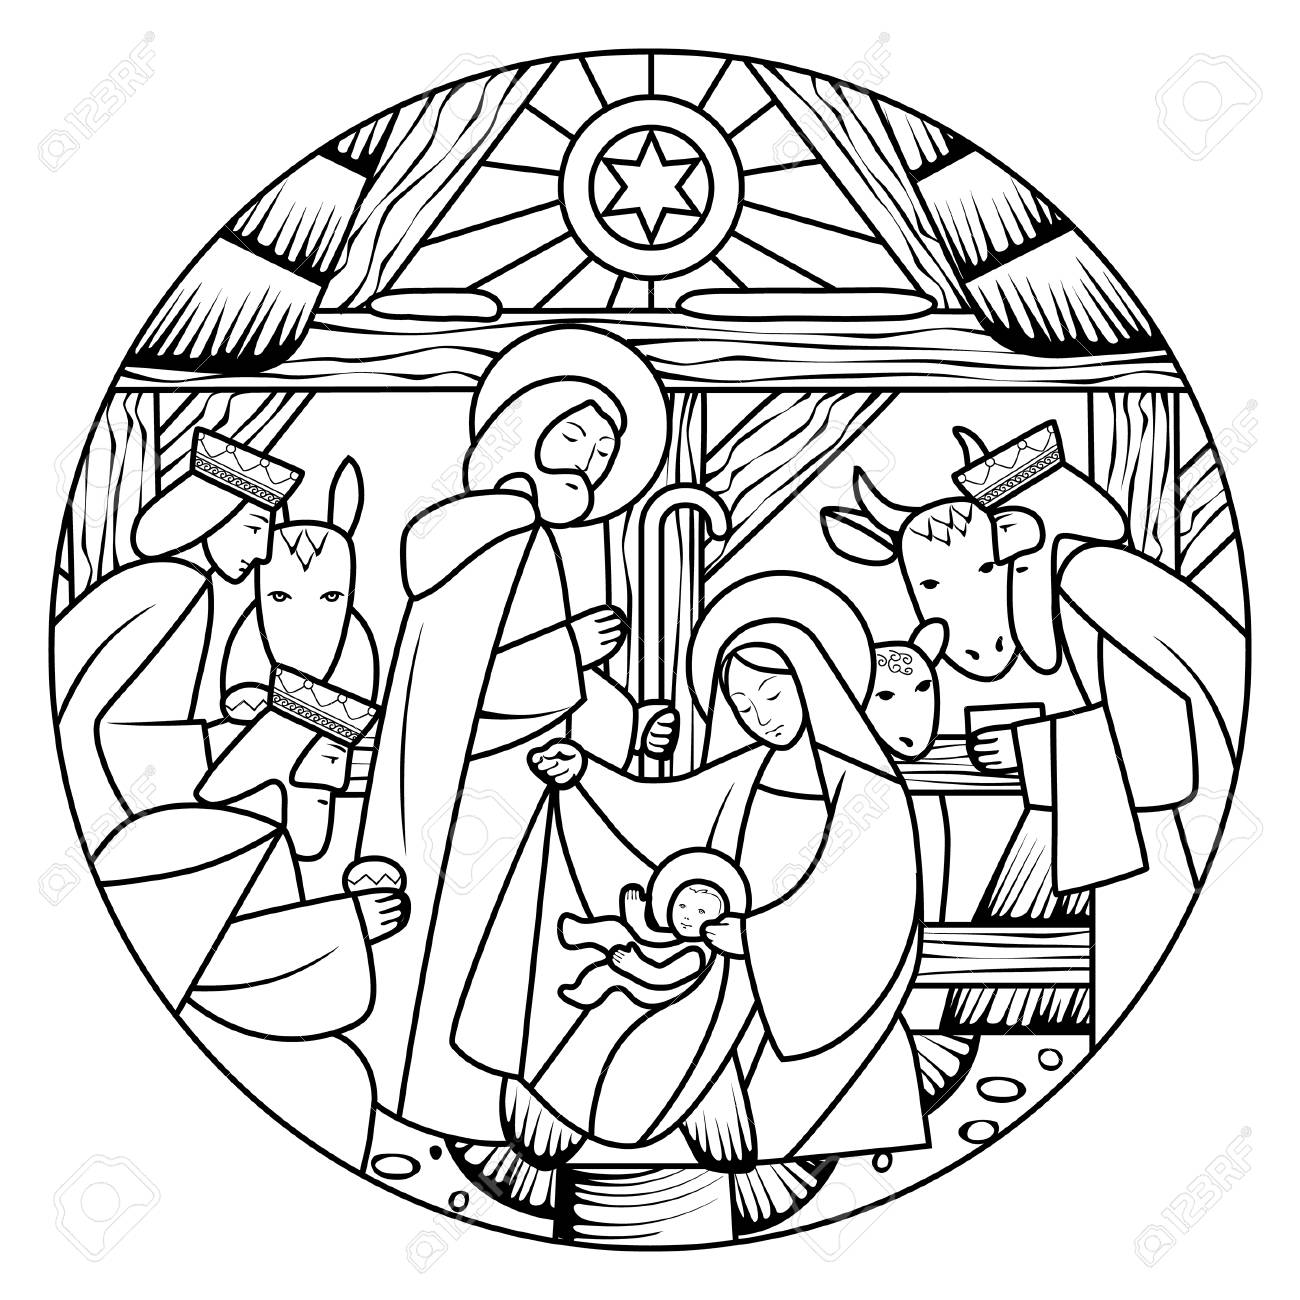 Birth of Jesus Christ scene in circle shape. Linear drawing for coloring book. Vector illustration - 104237125